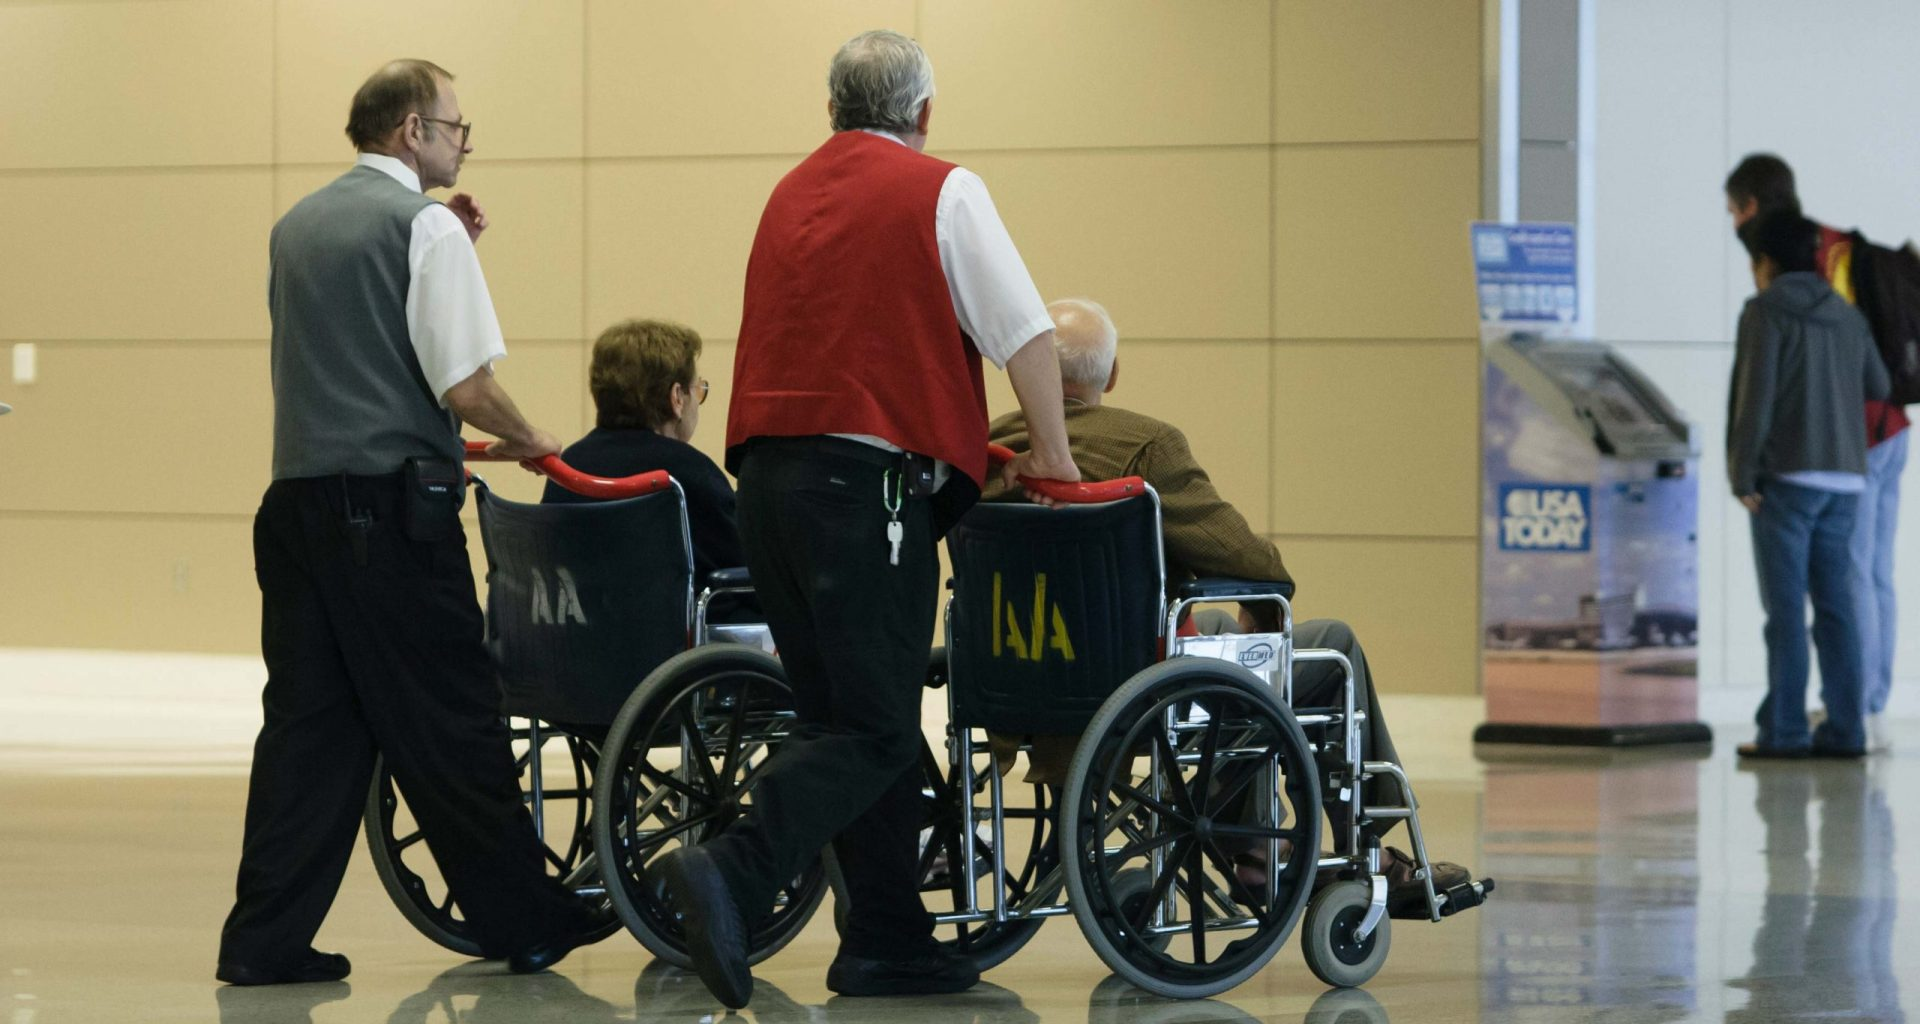 Wheelchair assistance at the airport.